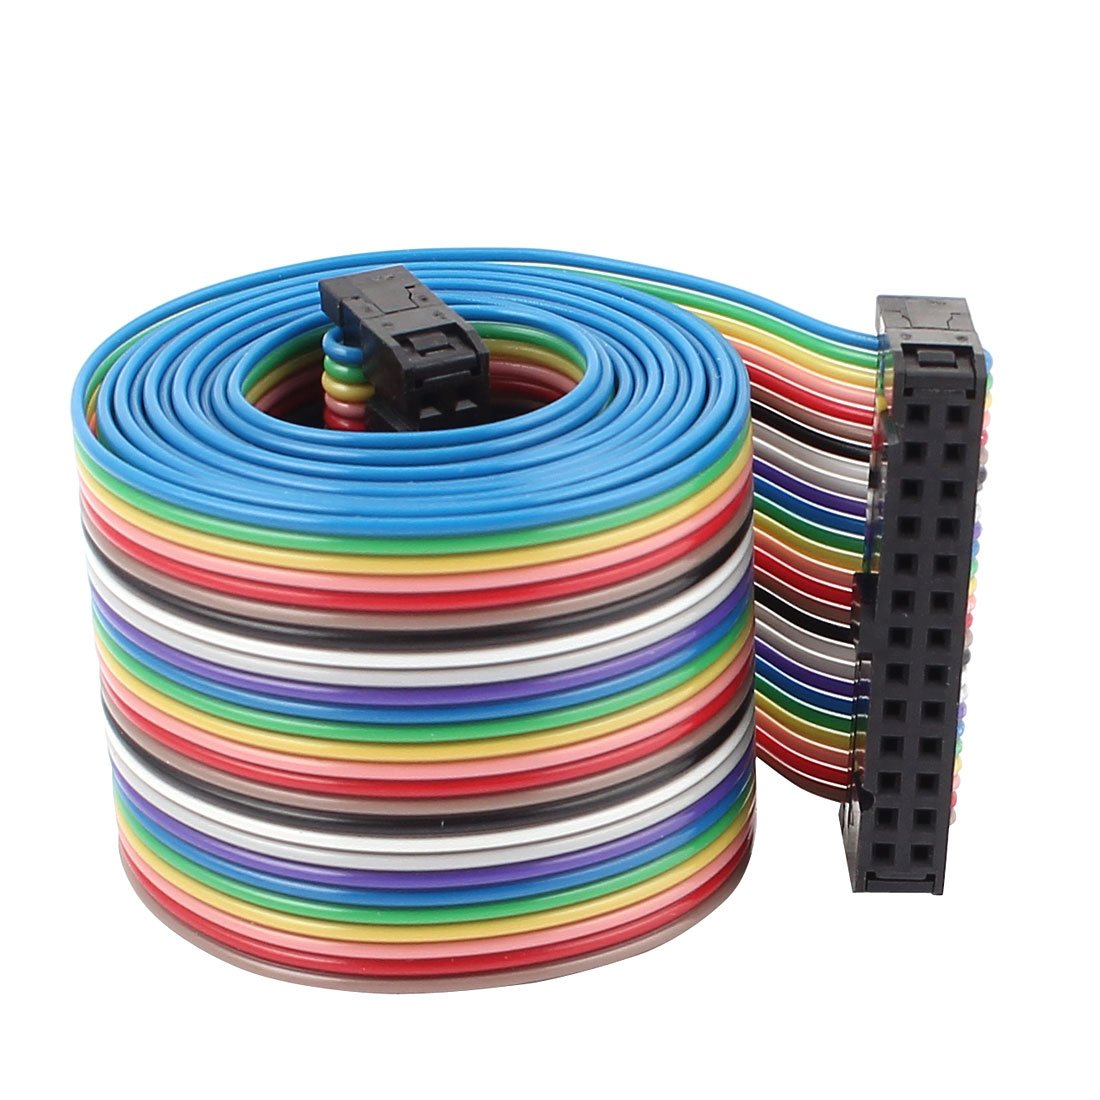 Amazon.com: 2.54mm 26 Pin 26 Way F/F Rainbow IDC Flat Ribbon Cable ...